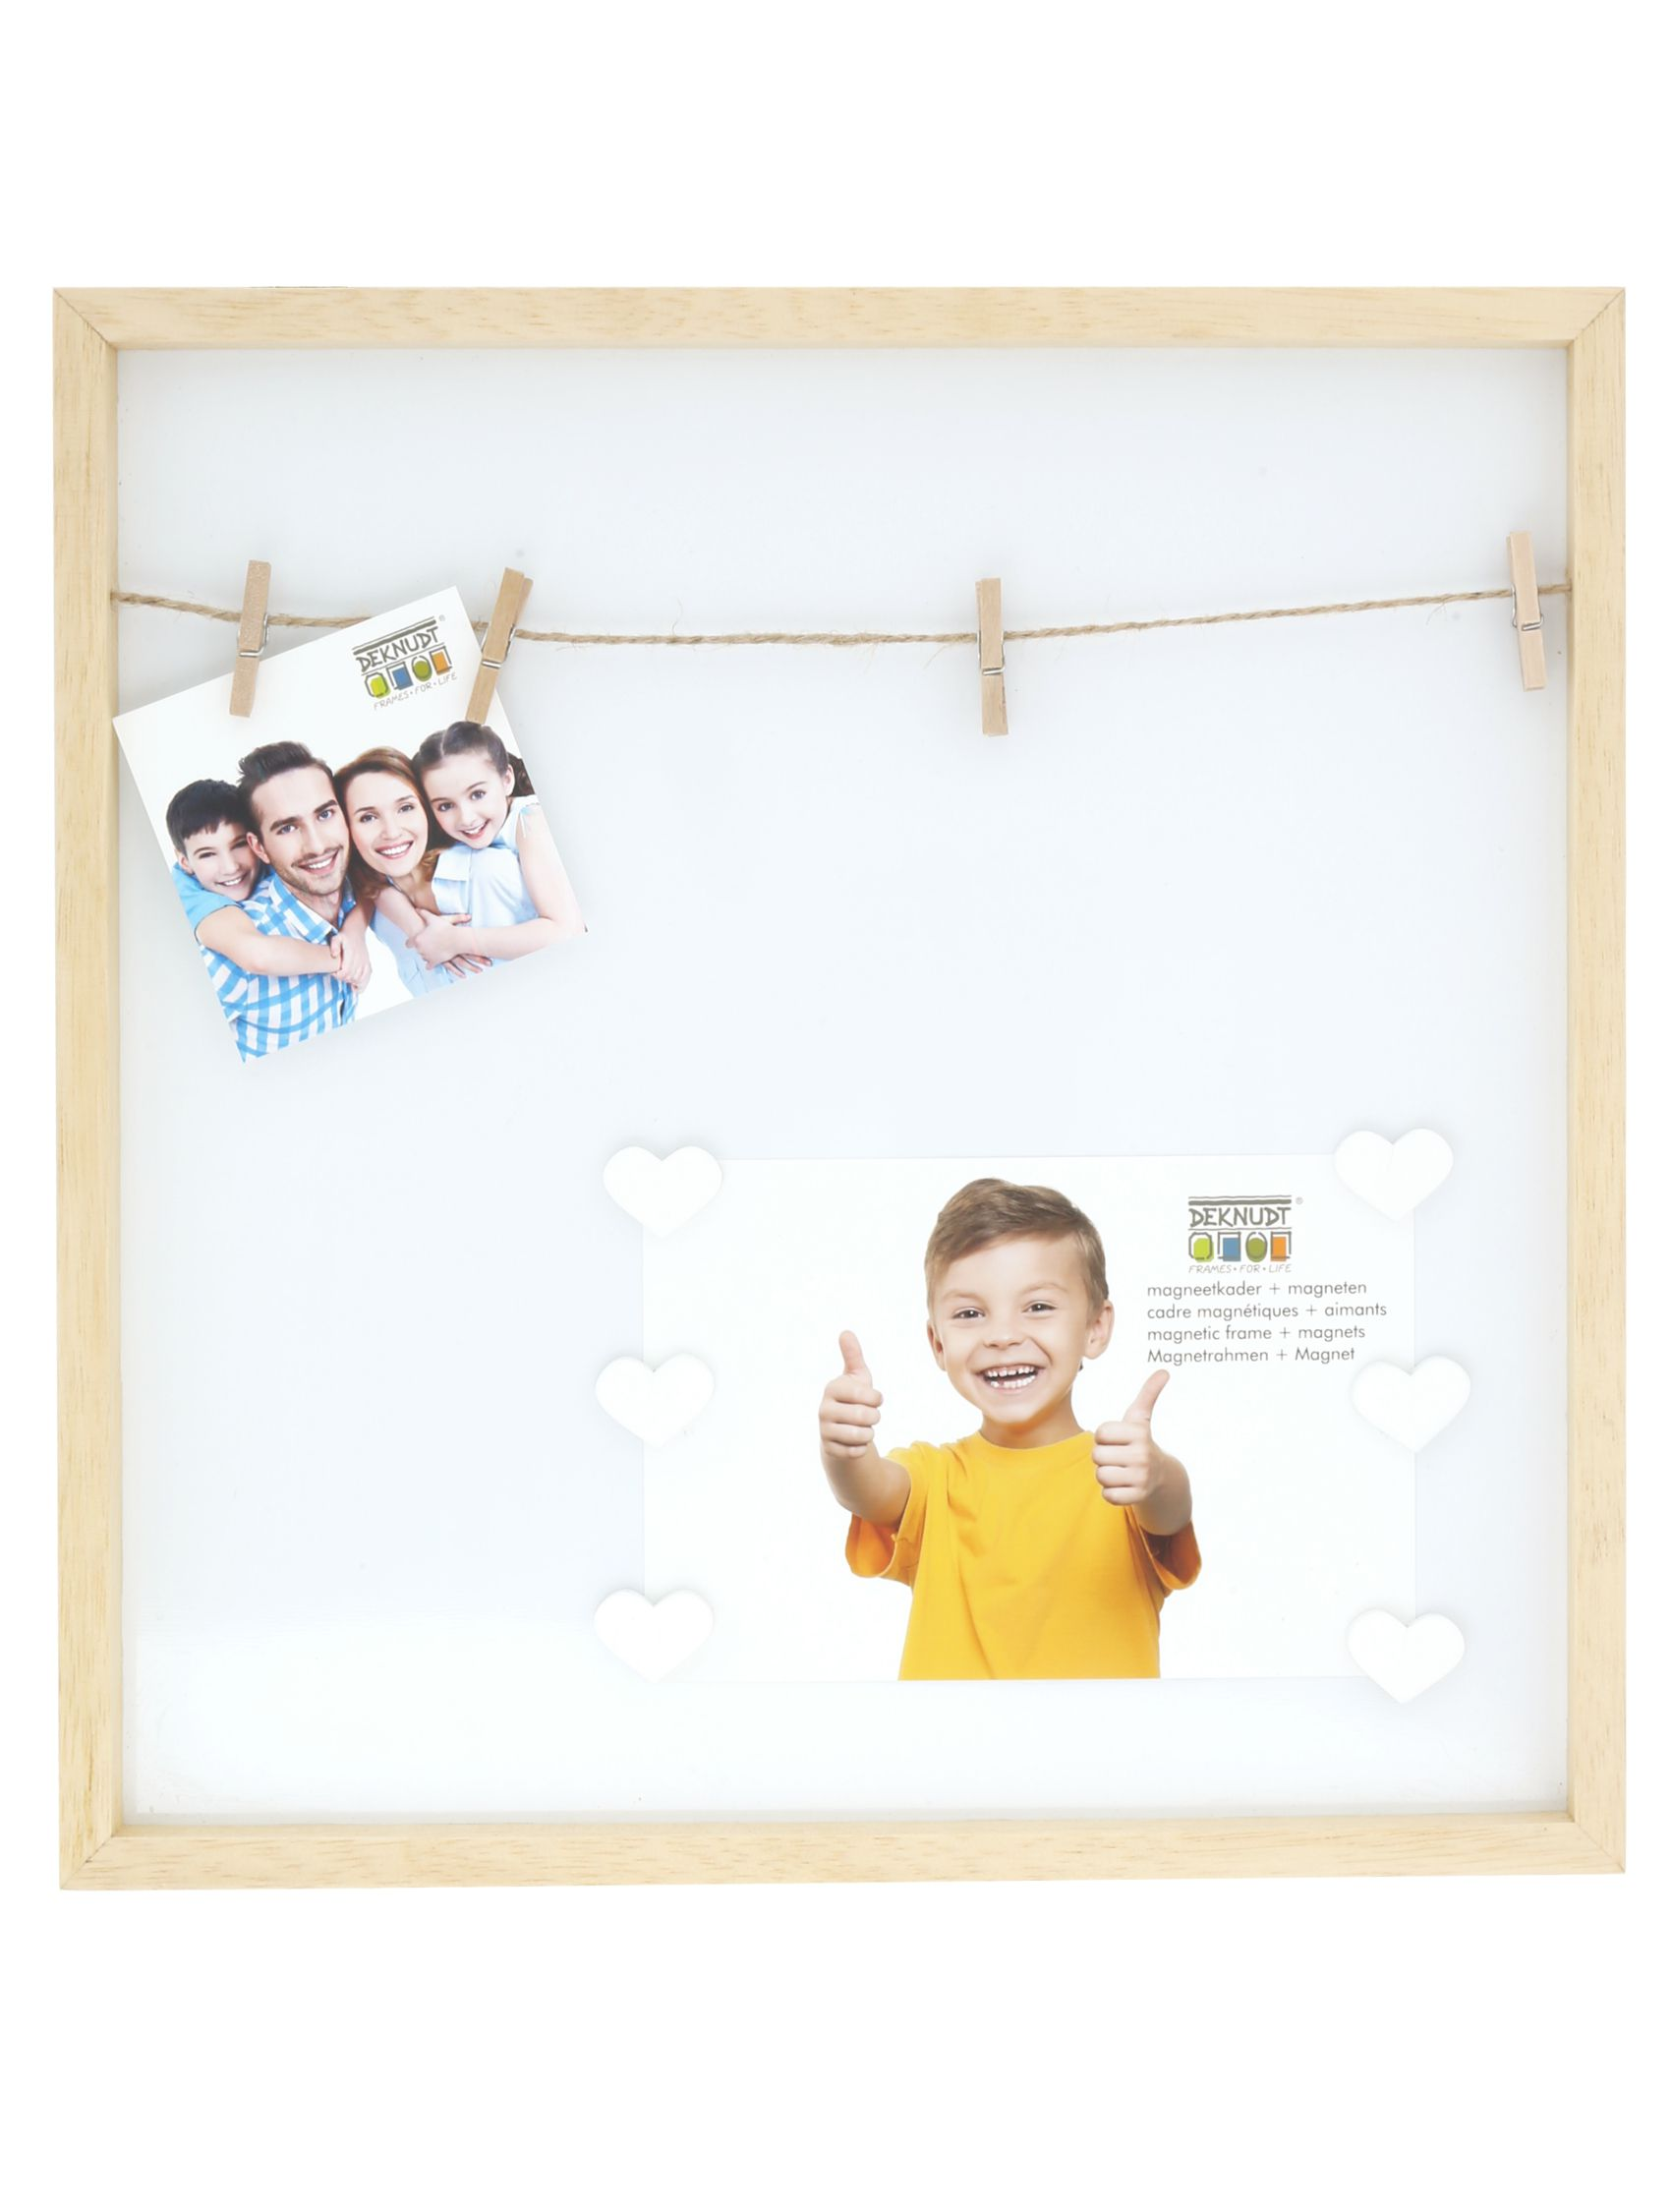 magneetbord naturel hout S68LH1 EA